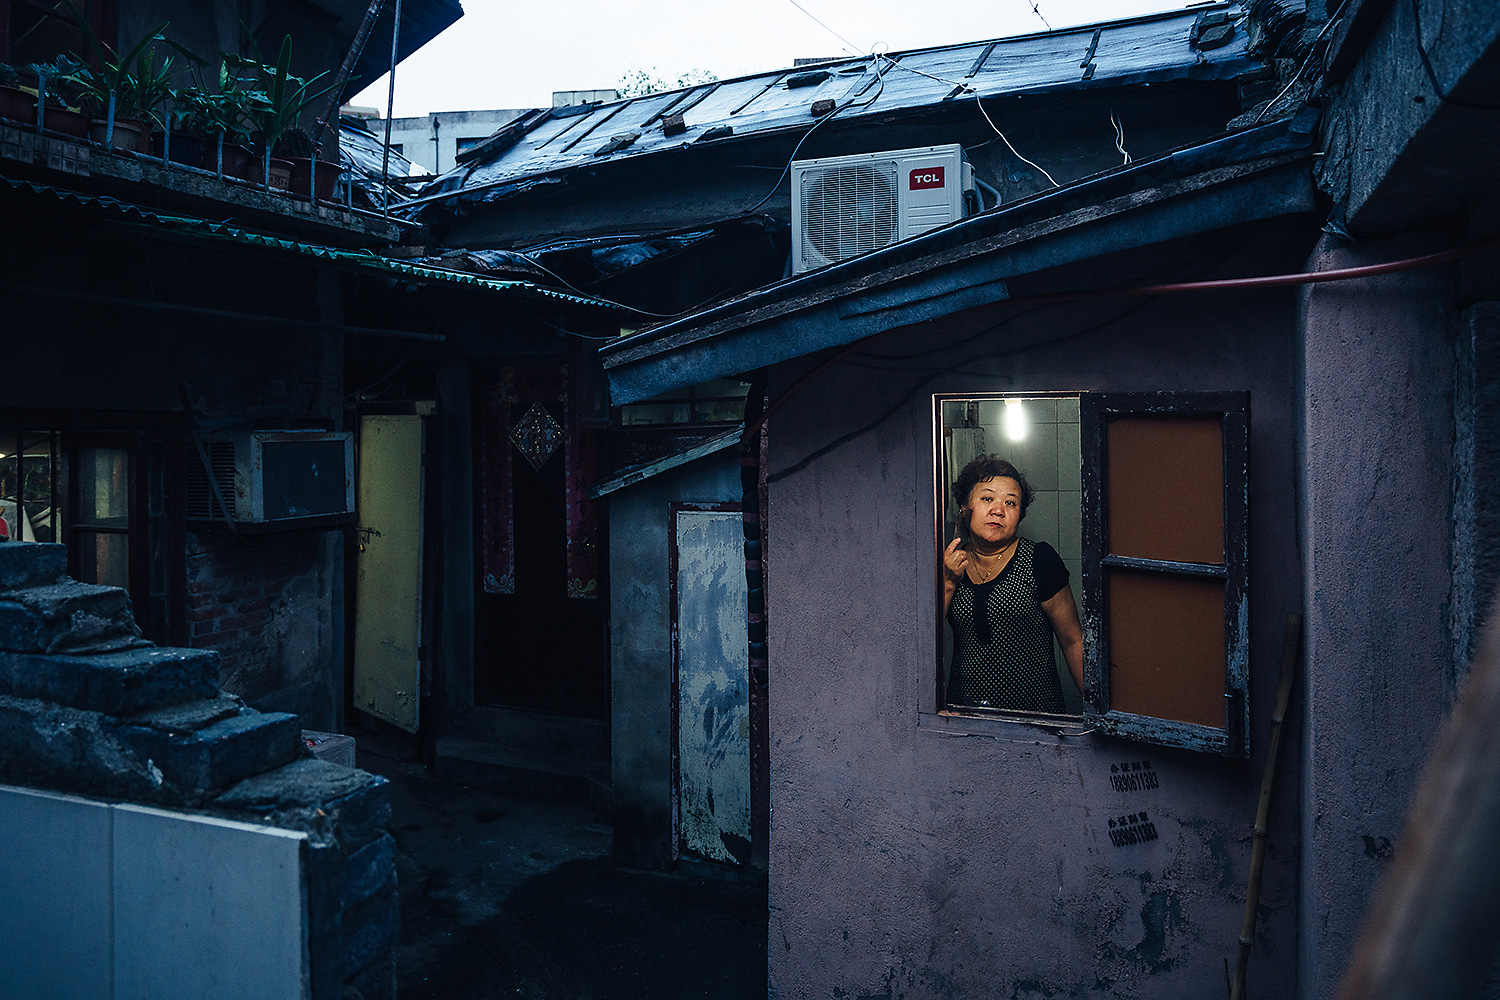 Zheng Ruizhen combs her hair after taking a shower in her Shanghai home. She was one of the last holdouts in her neighborhood, until her husband finally signed away their home after local officials threatened to tear down the bathroom. The couple didn't know how much compensation the Shanghai government was going to offer. Photo by Yuyang Liu @yuyang_liu_